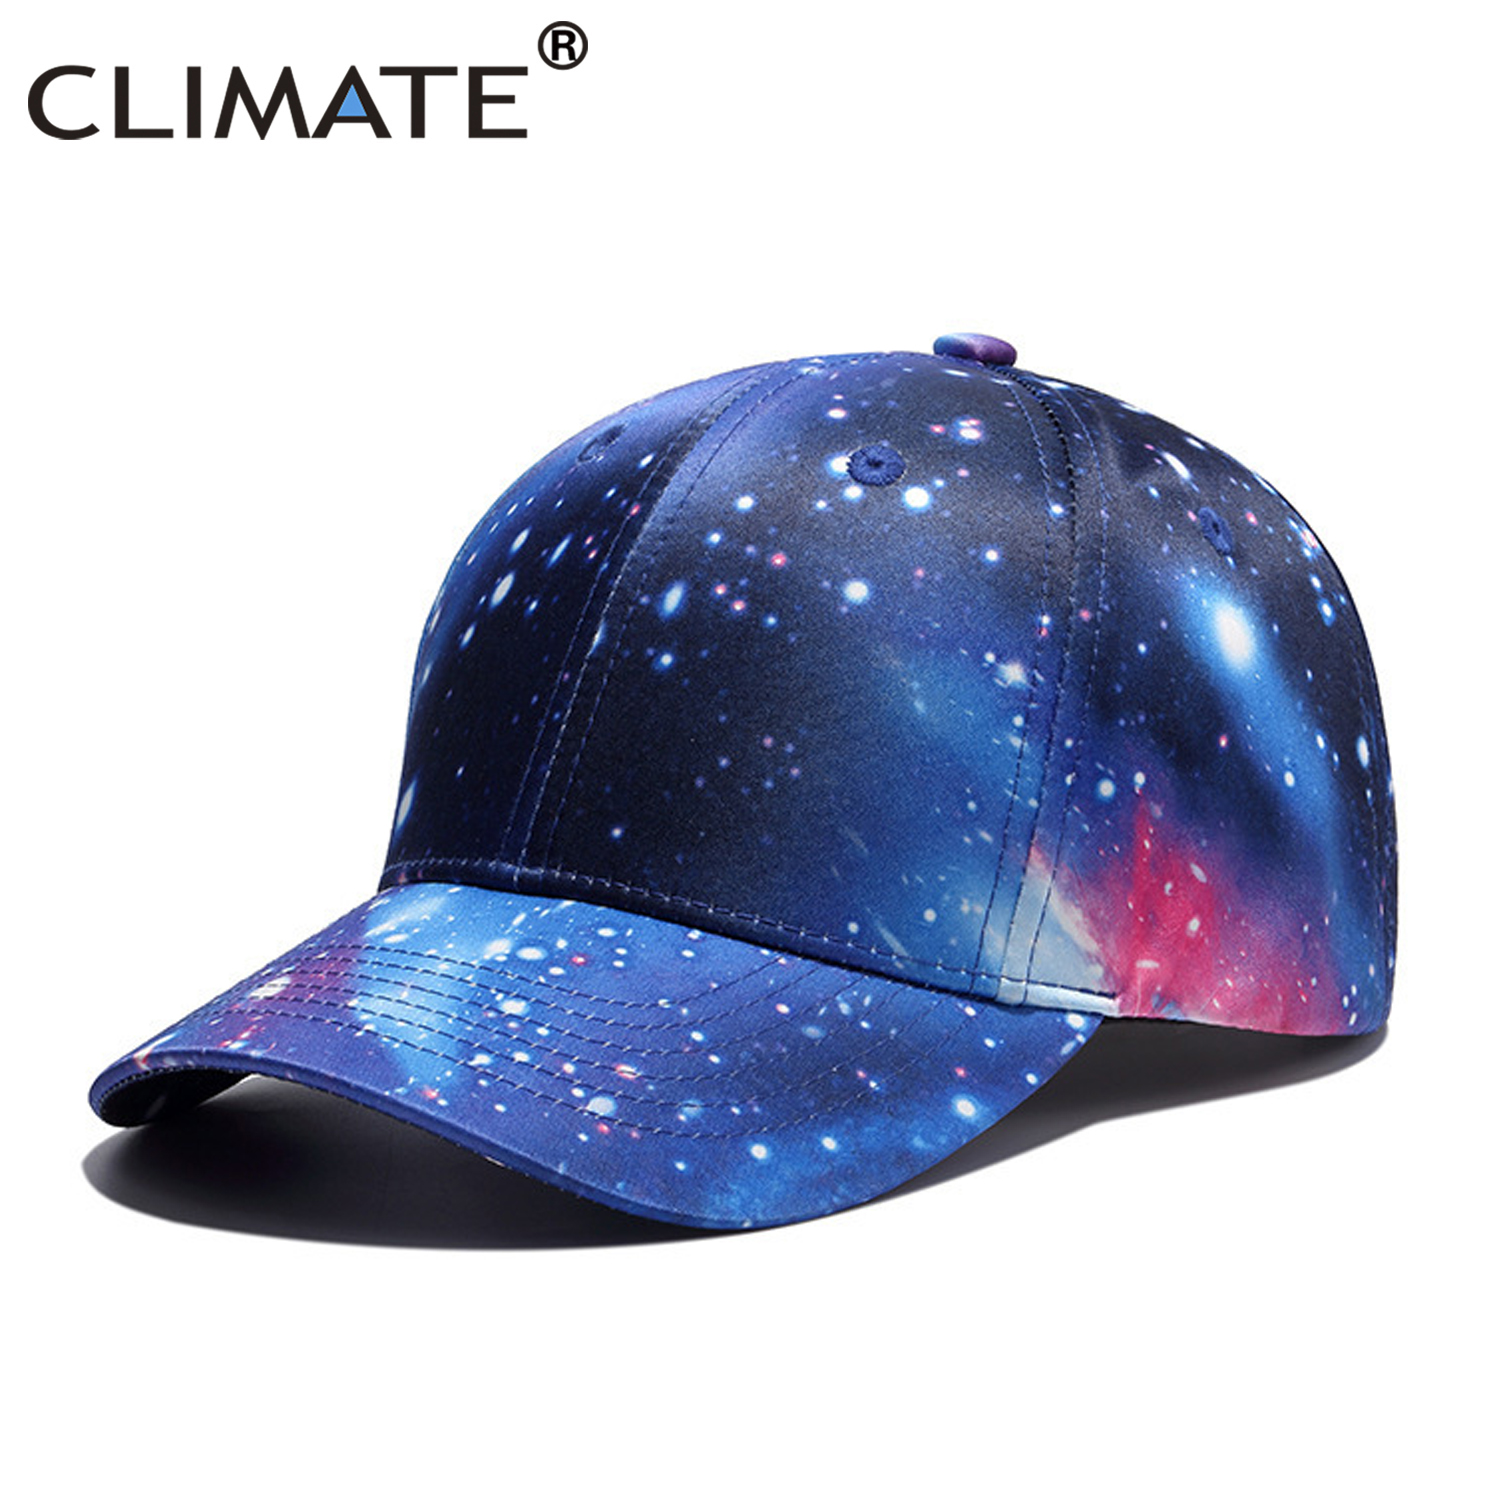 separation shoes e08eb c6fd5 CLIMATE 3D Printing Baseball Cap Hip Hop Street Style Cap Hat Rapper Outer  Space Galaxy Caps